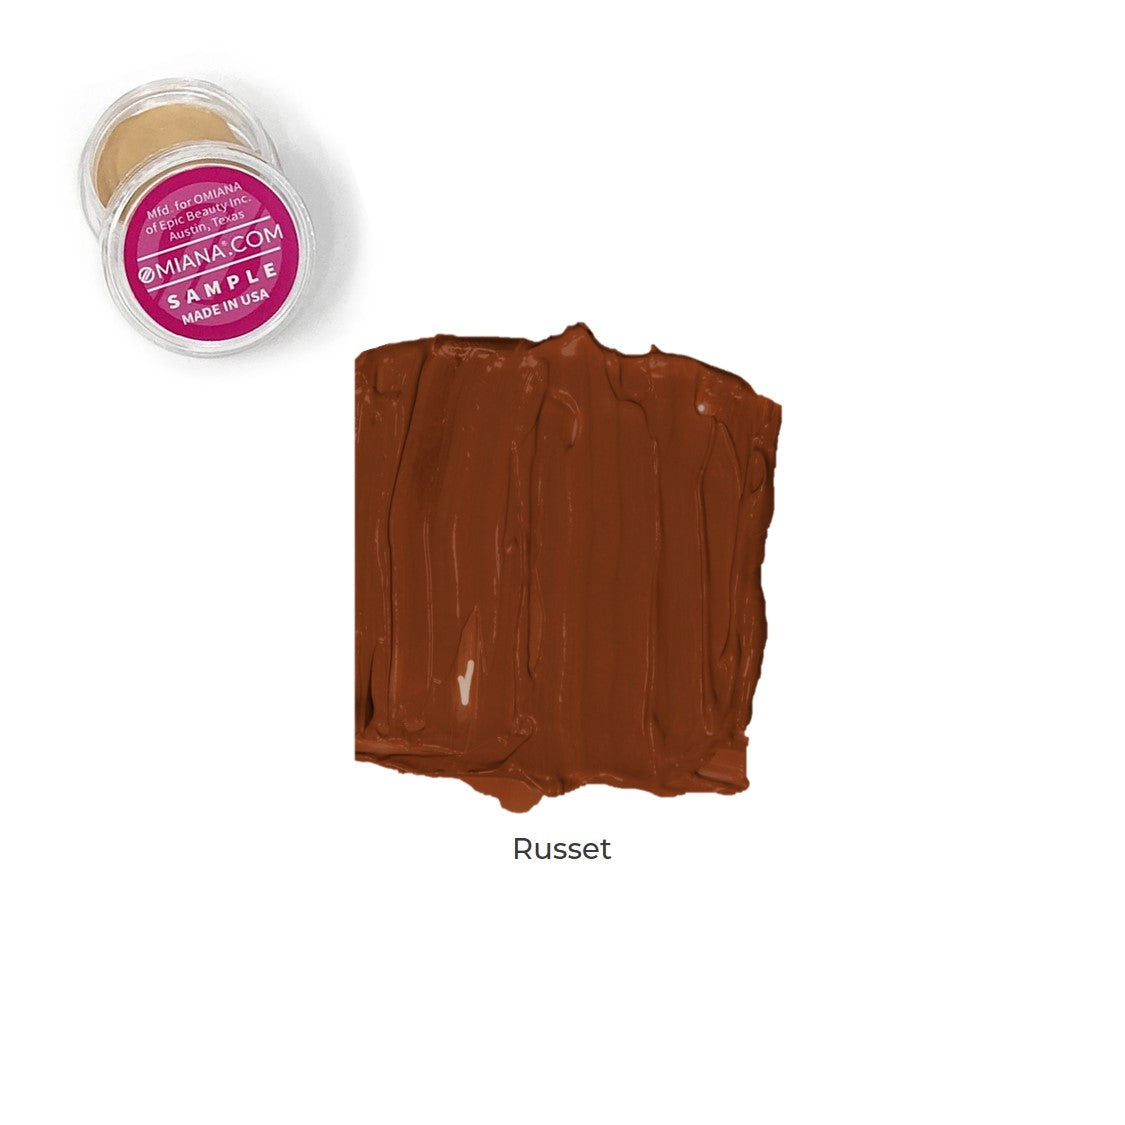 Velvet Matte Liquid Foundation Sample - Russet